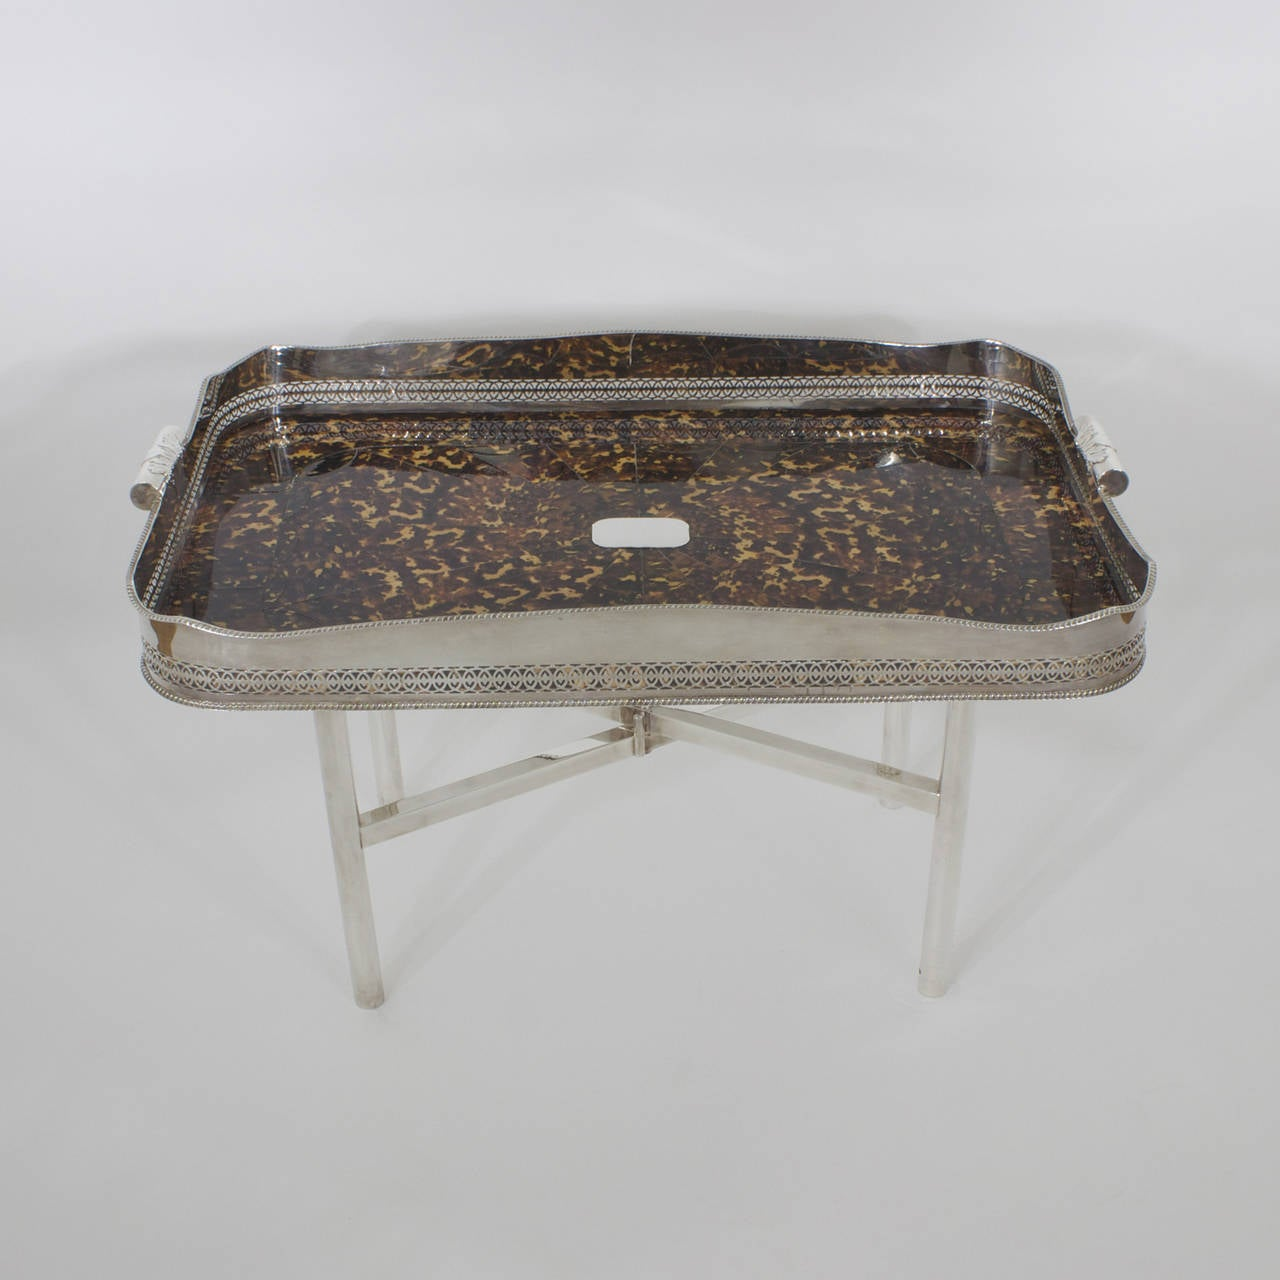 A fine large faux tortoise shell serving tray, tea, coffee, or cocktail table with a prominent silver plated gallery, tooled with intricate fret work, handles decorated with acanthus and center plaque for engraving. This faux tortoiseshell tray is